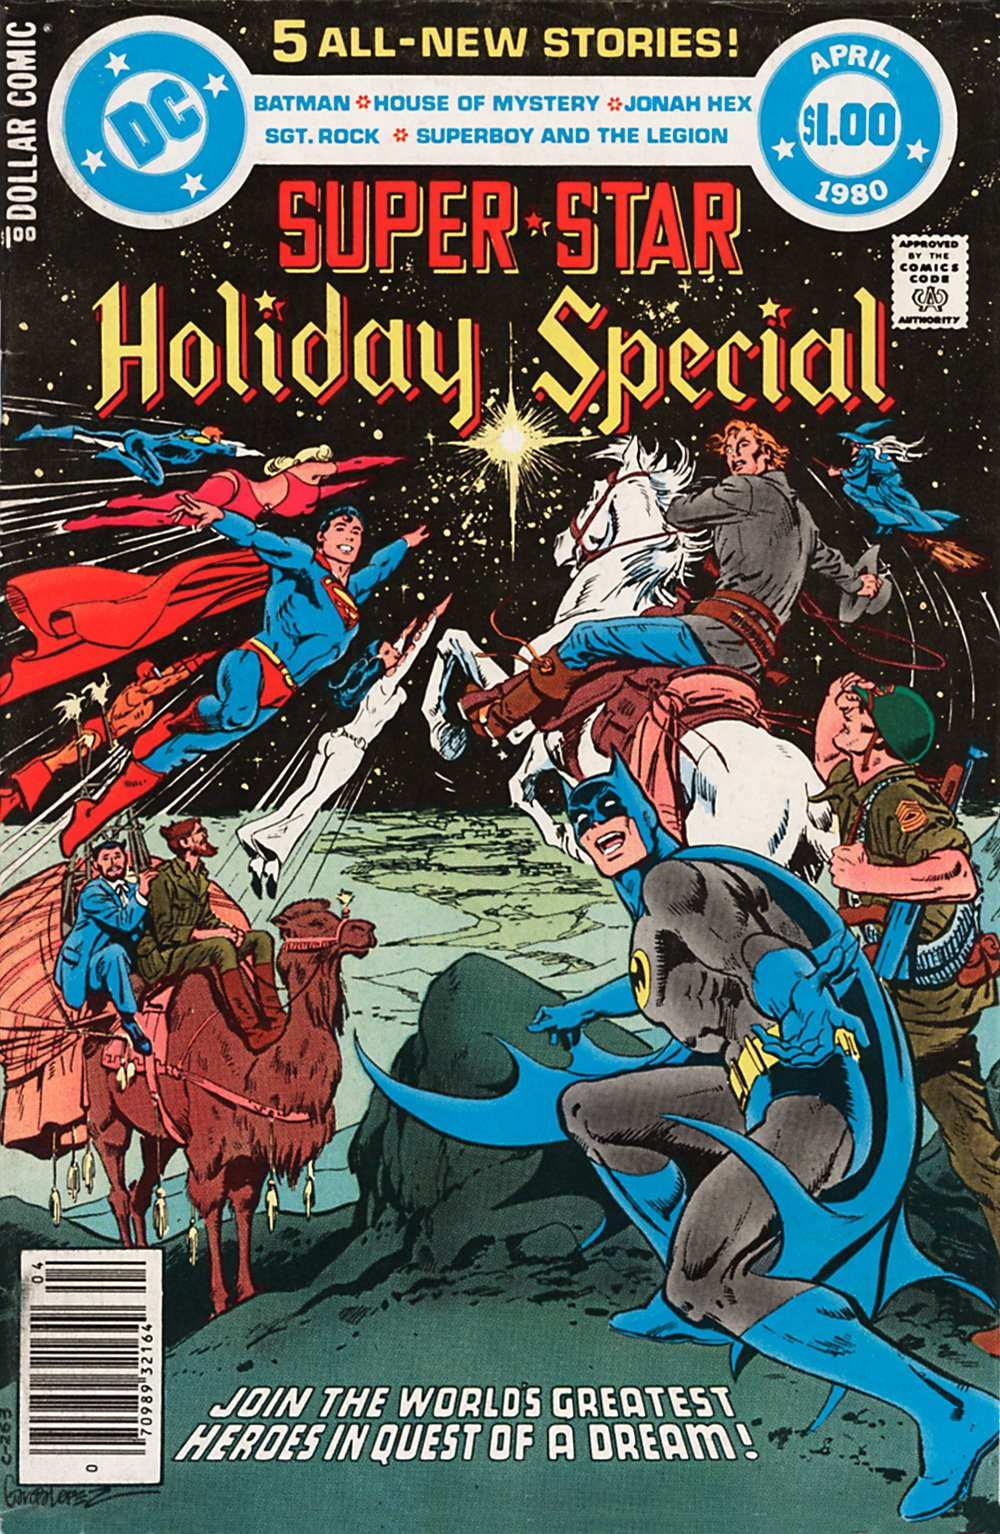 Dc Super Star Holiday Special [DC] OS1 1980.jpg